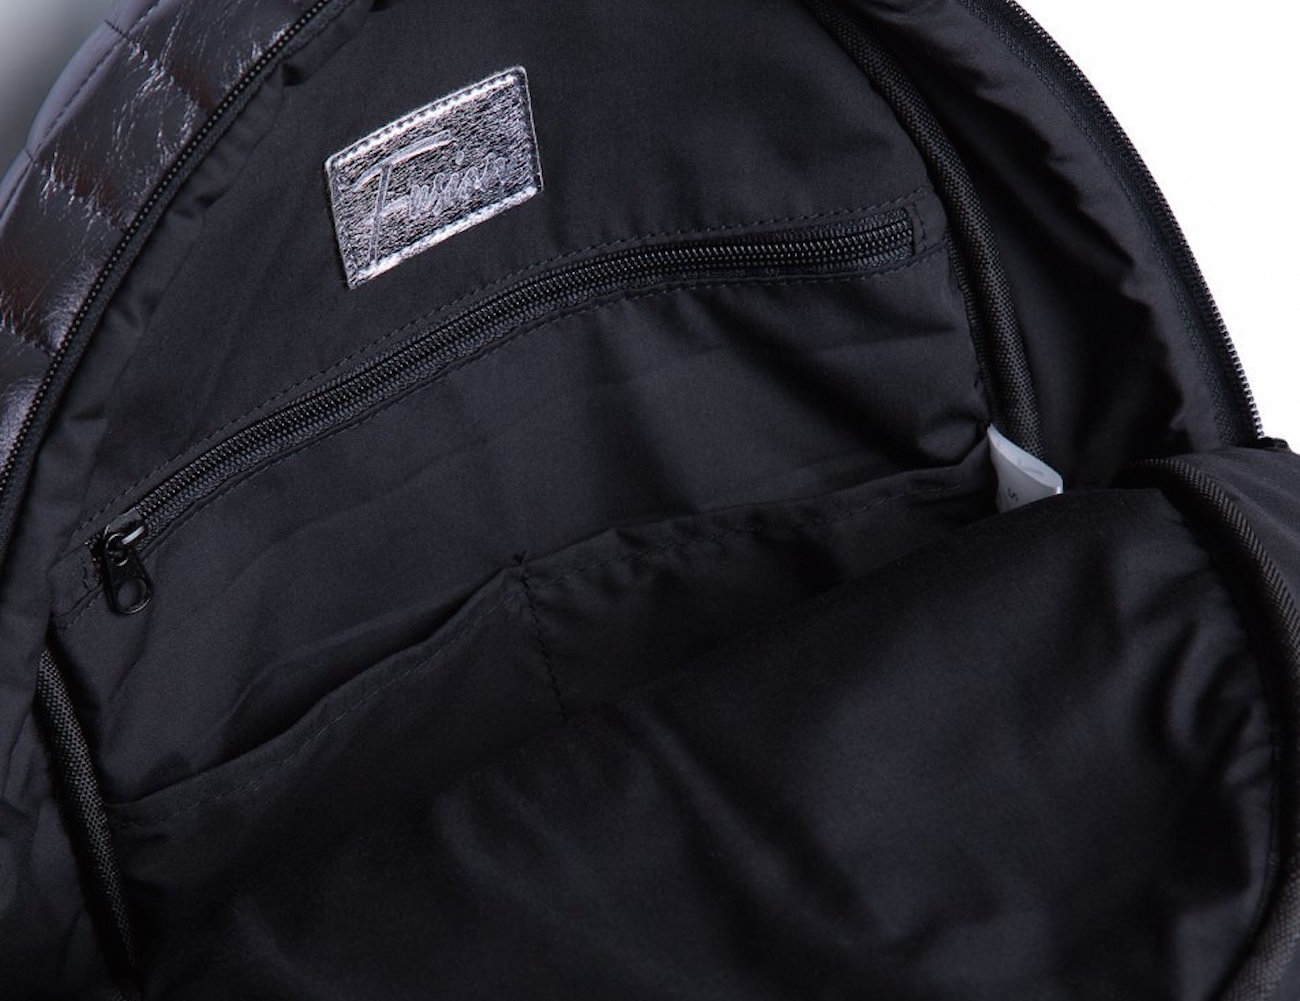 Silver Bar Backpack by Fusion Clothing – Quilted Vinyl Fabric With Branded Elements